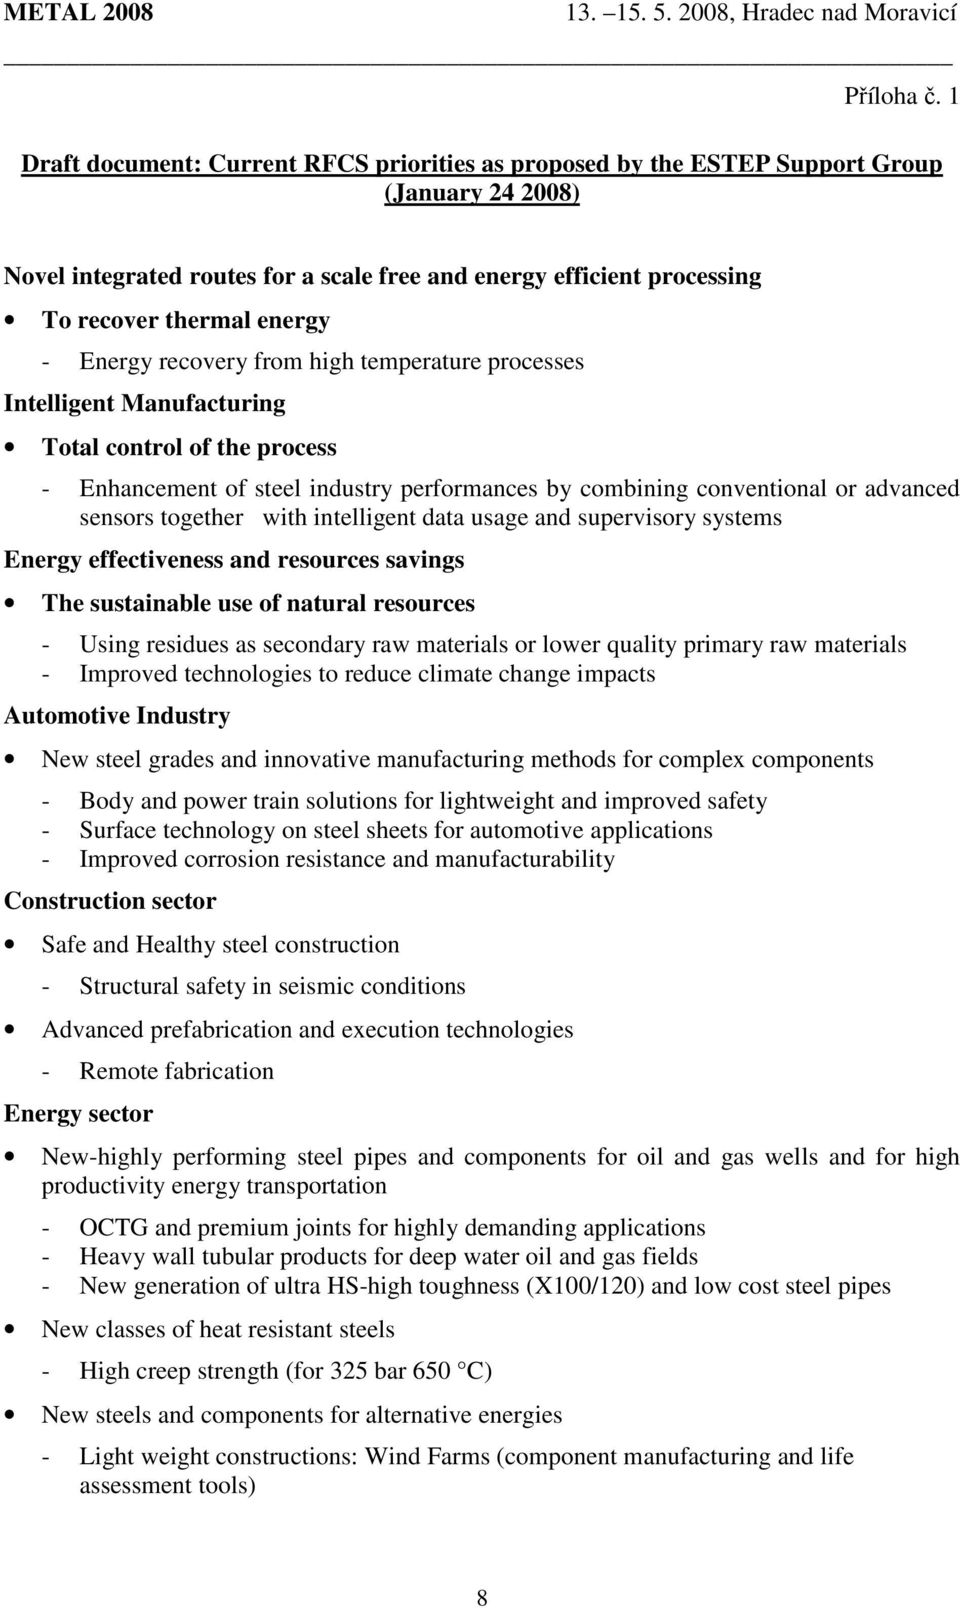 Energy recovery from high temperature processes Intelligent Manufacturing Total control of the process - Enhancement of steel industry performances by combining conventional or advanced sensors